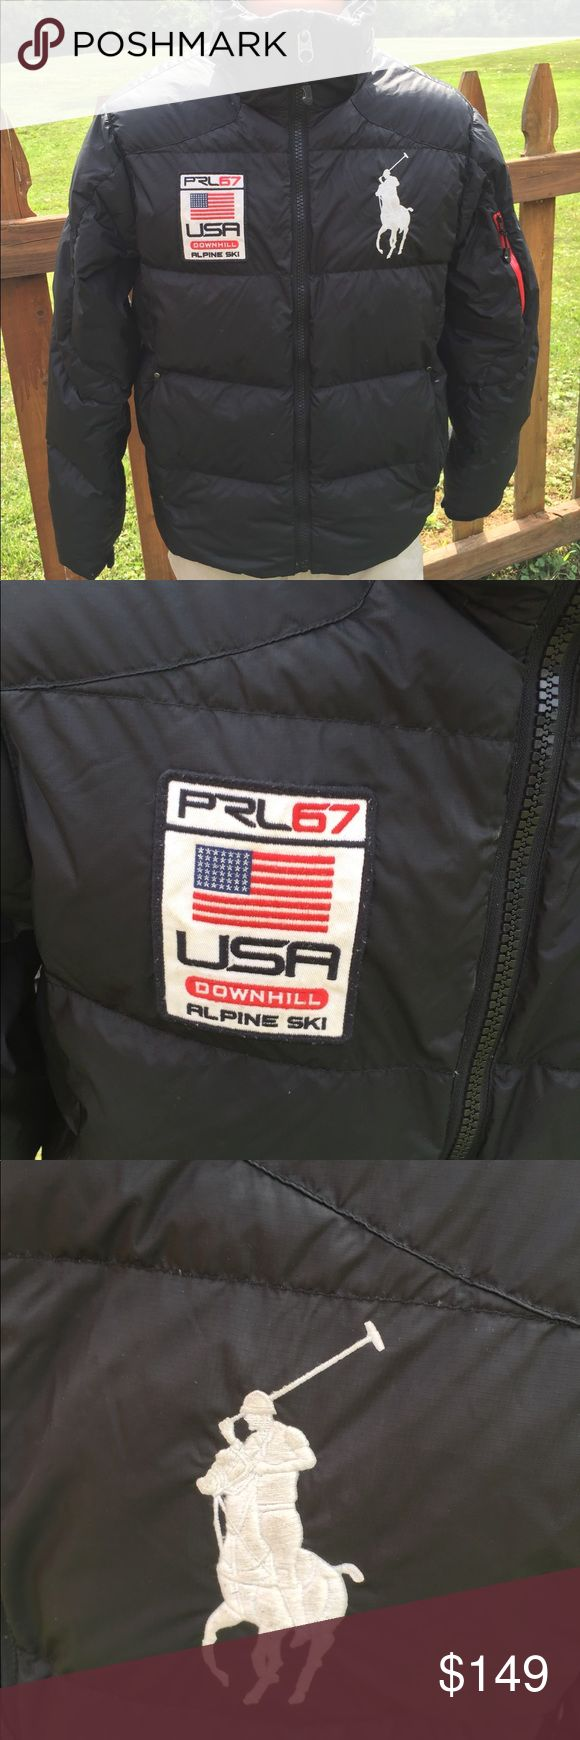 Polo by Ralph Lauren Mens Alpine Ski Puffer Jacket Size medium. Detachable hood lining has some tears in the lining. We had removed it but will include hood in case new owner wants it. Super hard to find. Be sure to view the other items in our closet. We offer  women's, Mens and kids items in a variety of sizes. Bundle and save!! We love reasonable offers!! Thank you for viewing our item!! Polo by Ralph Lauren Jackets & Coats Ski & Snowboard